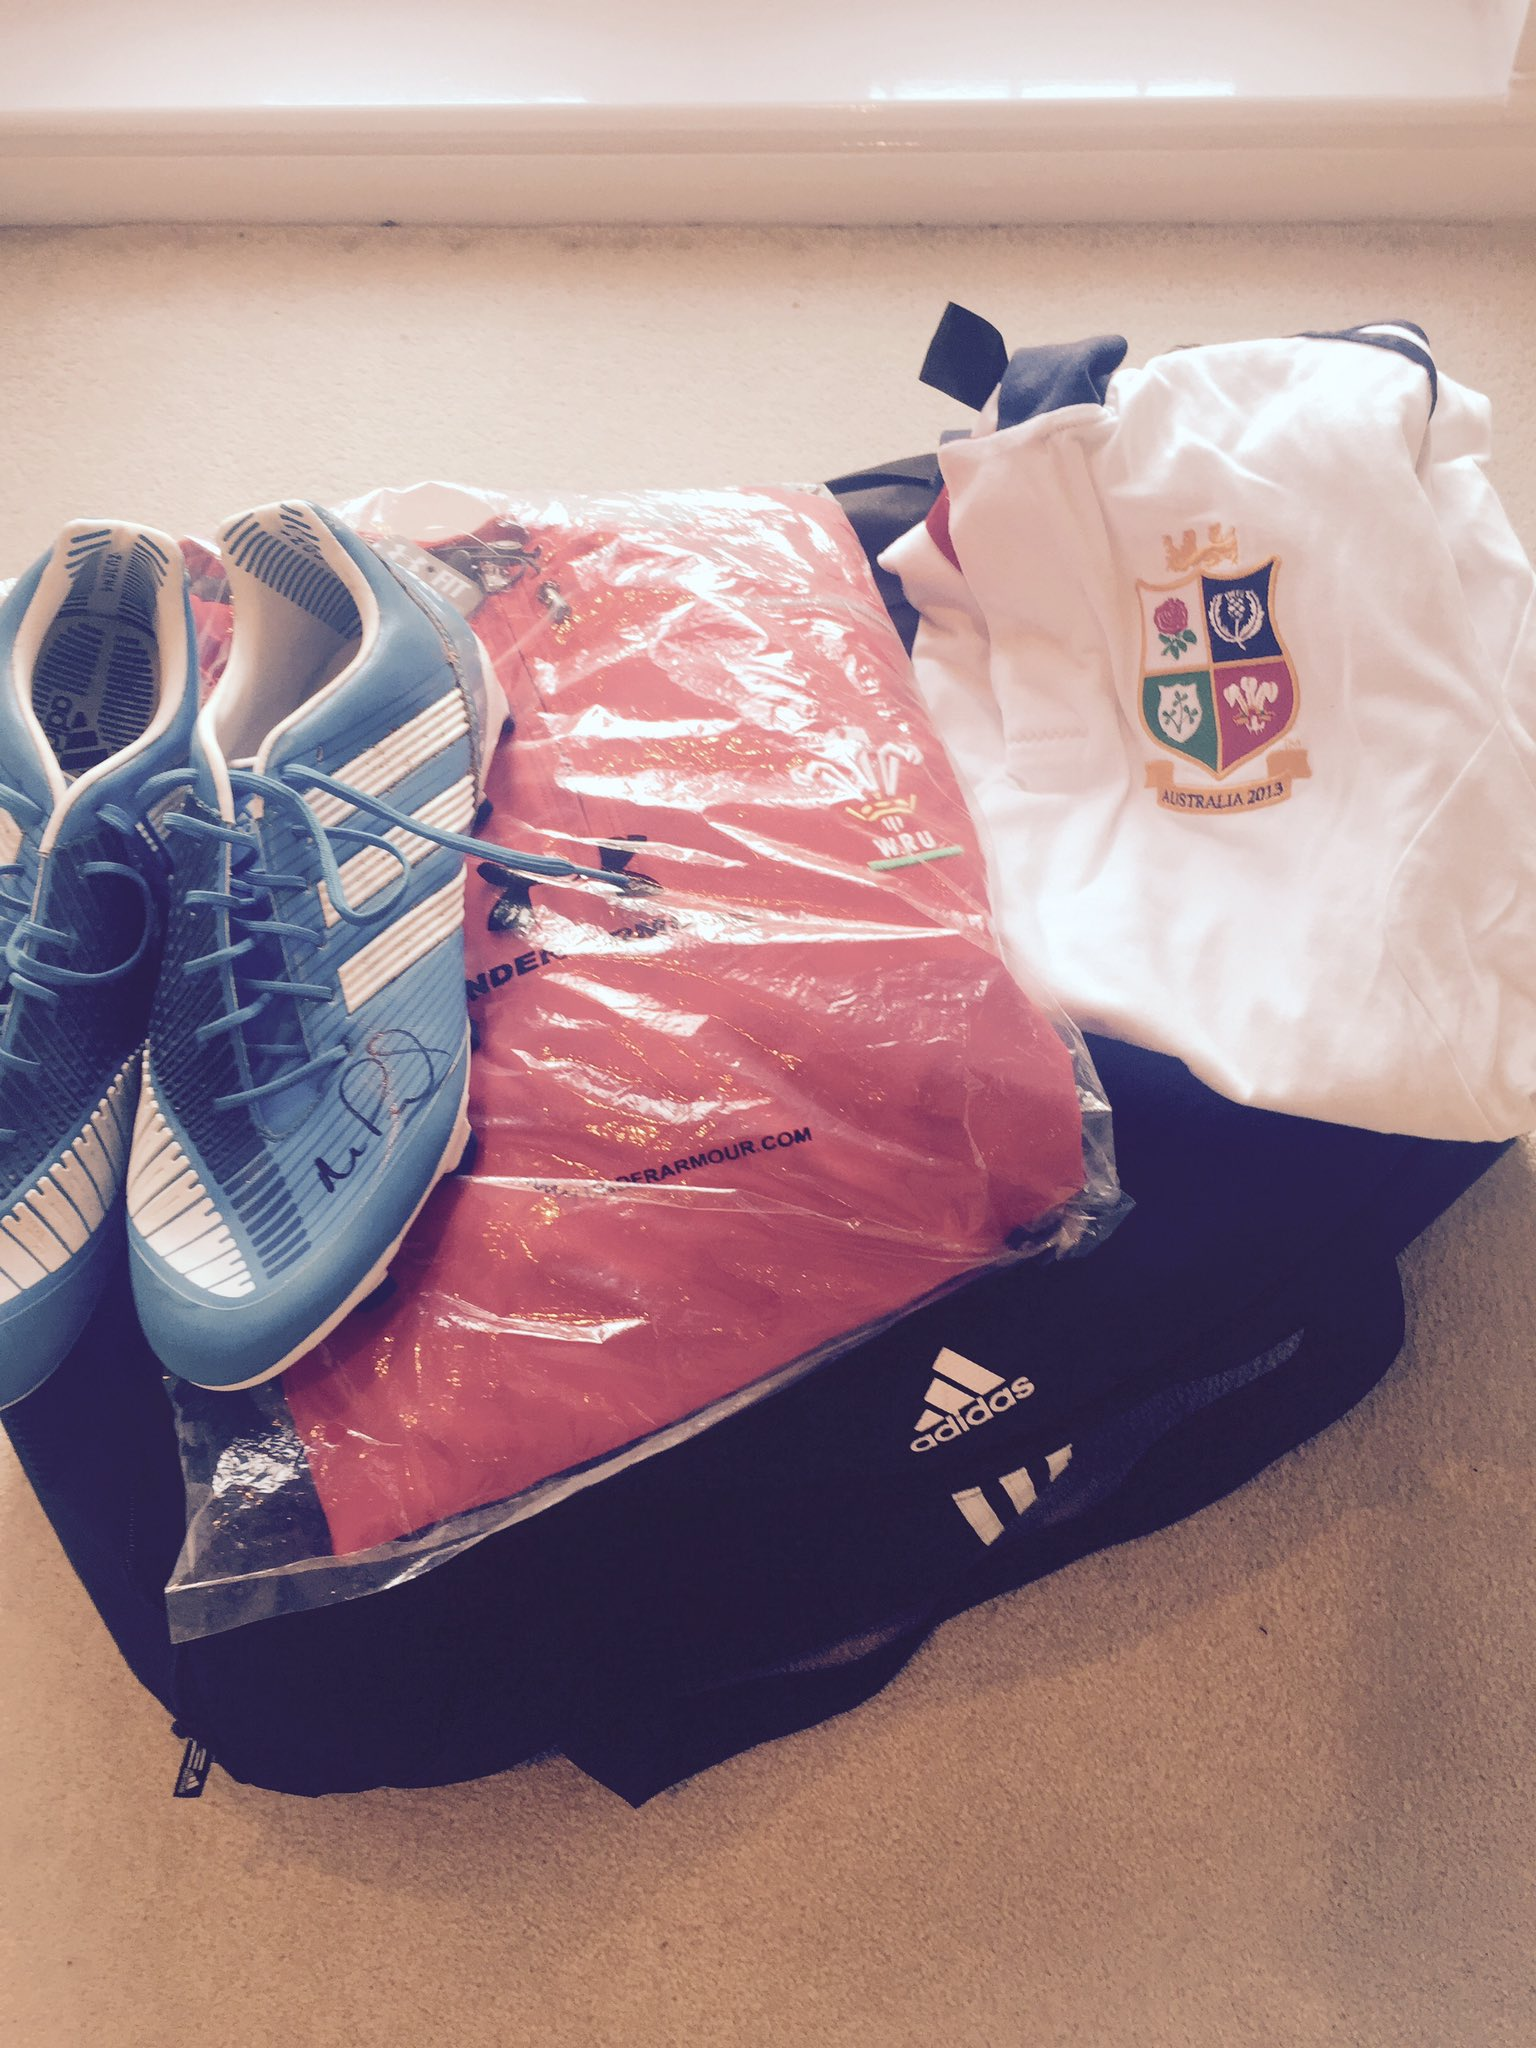 RT @mikephillips009: I have a bag full of kit I want to give away just re-tweet for a chance to win, I'll pick a winner at random! https://…